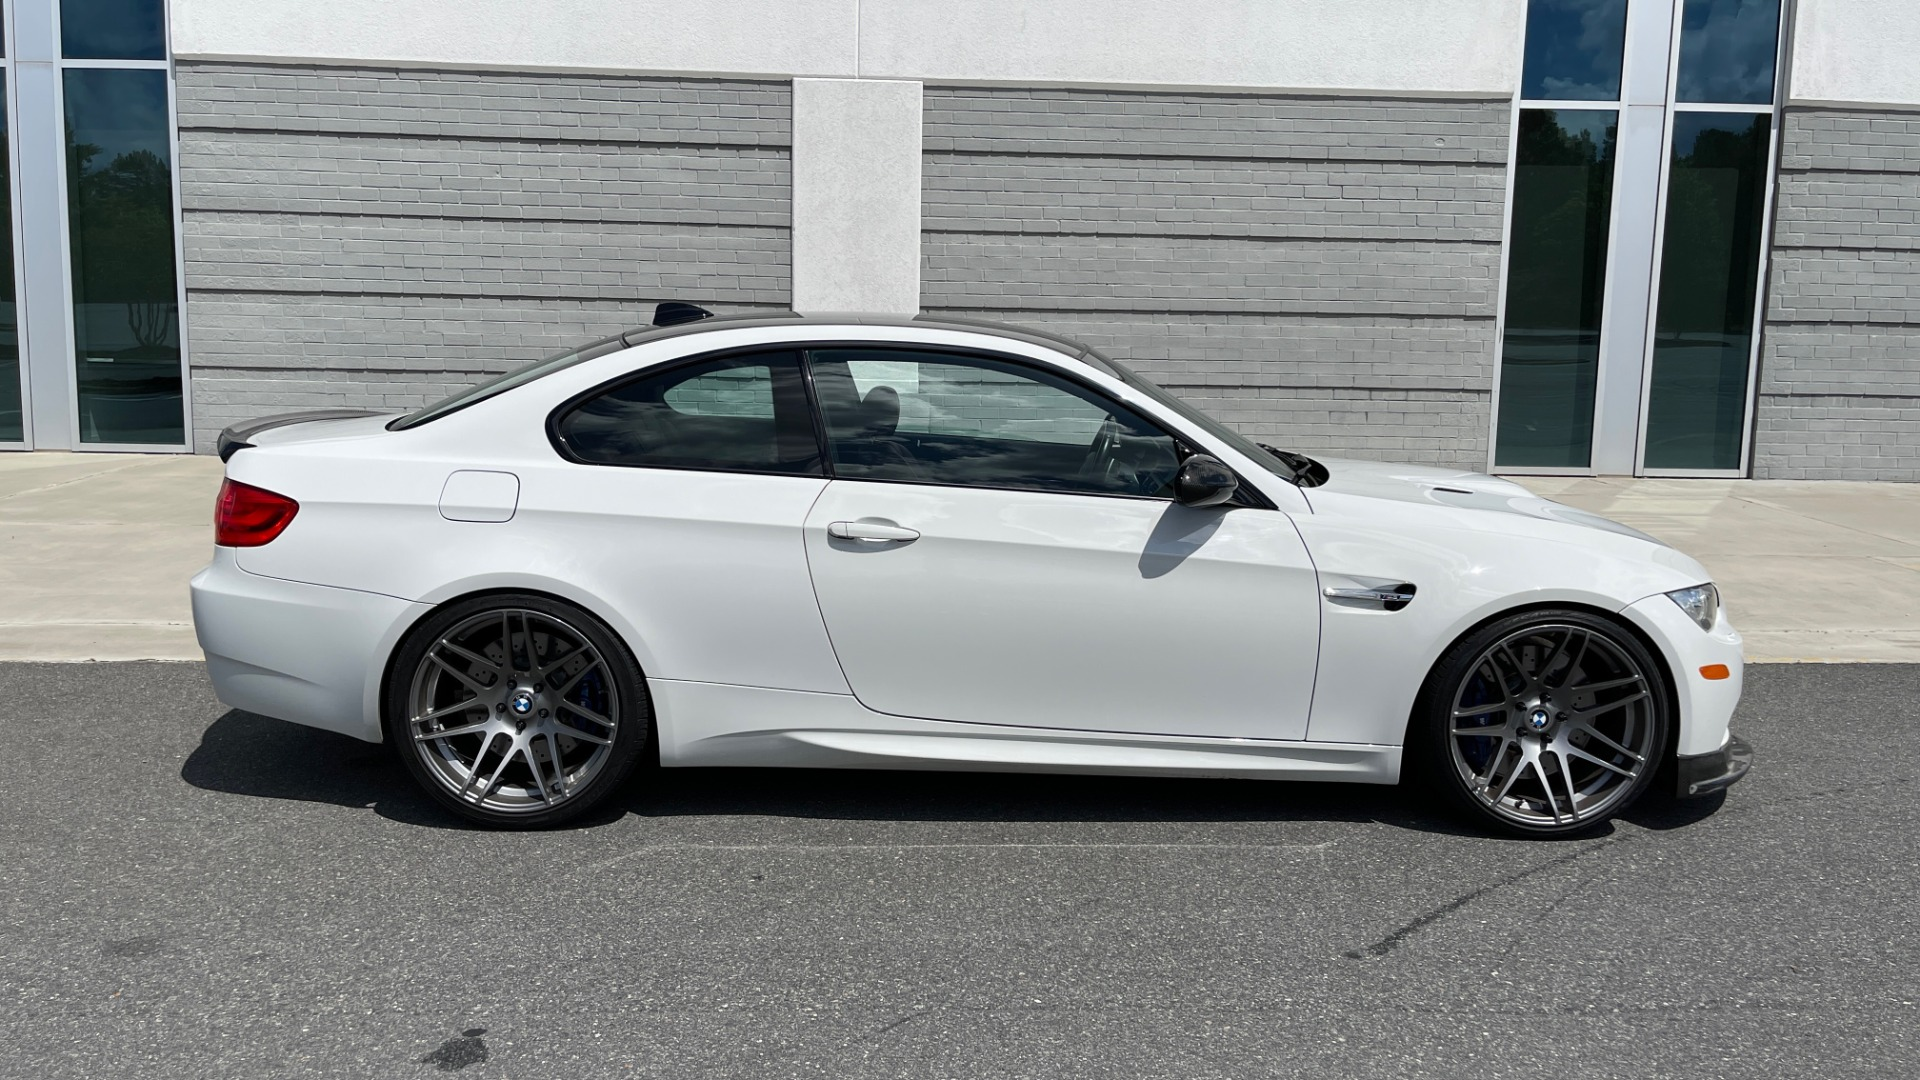 Used 2011 BMW M3 PREMIUM COUPE / CLD WTHR / TECH / SMARTPHONEINT / PARK ASST for sale Sold at Formula Imports in Charlotte NC 28227 7